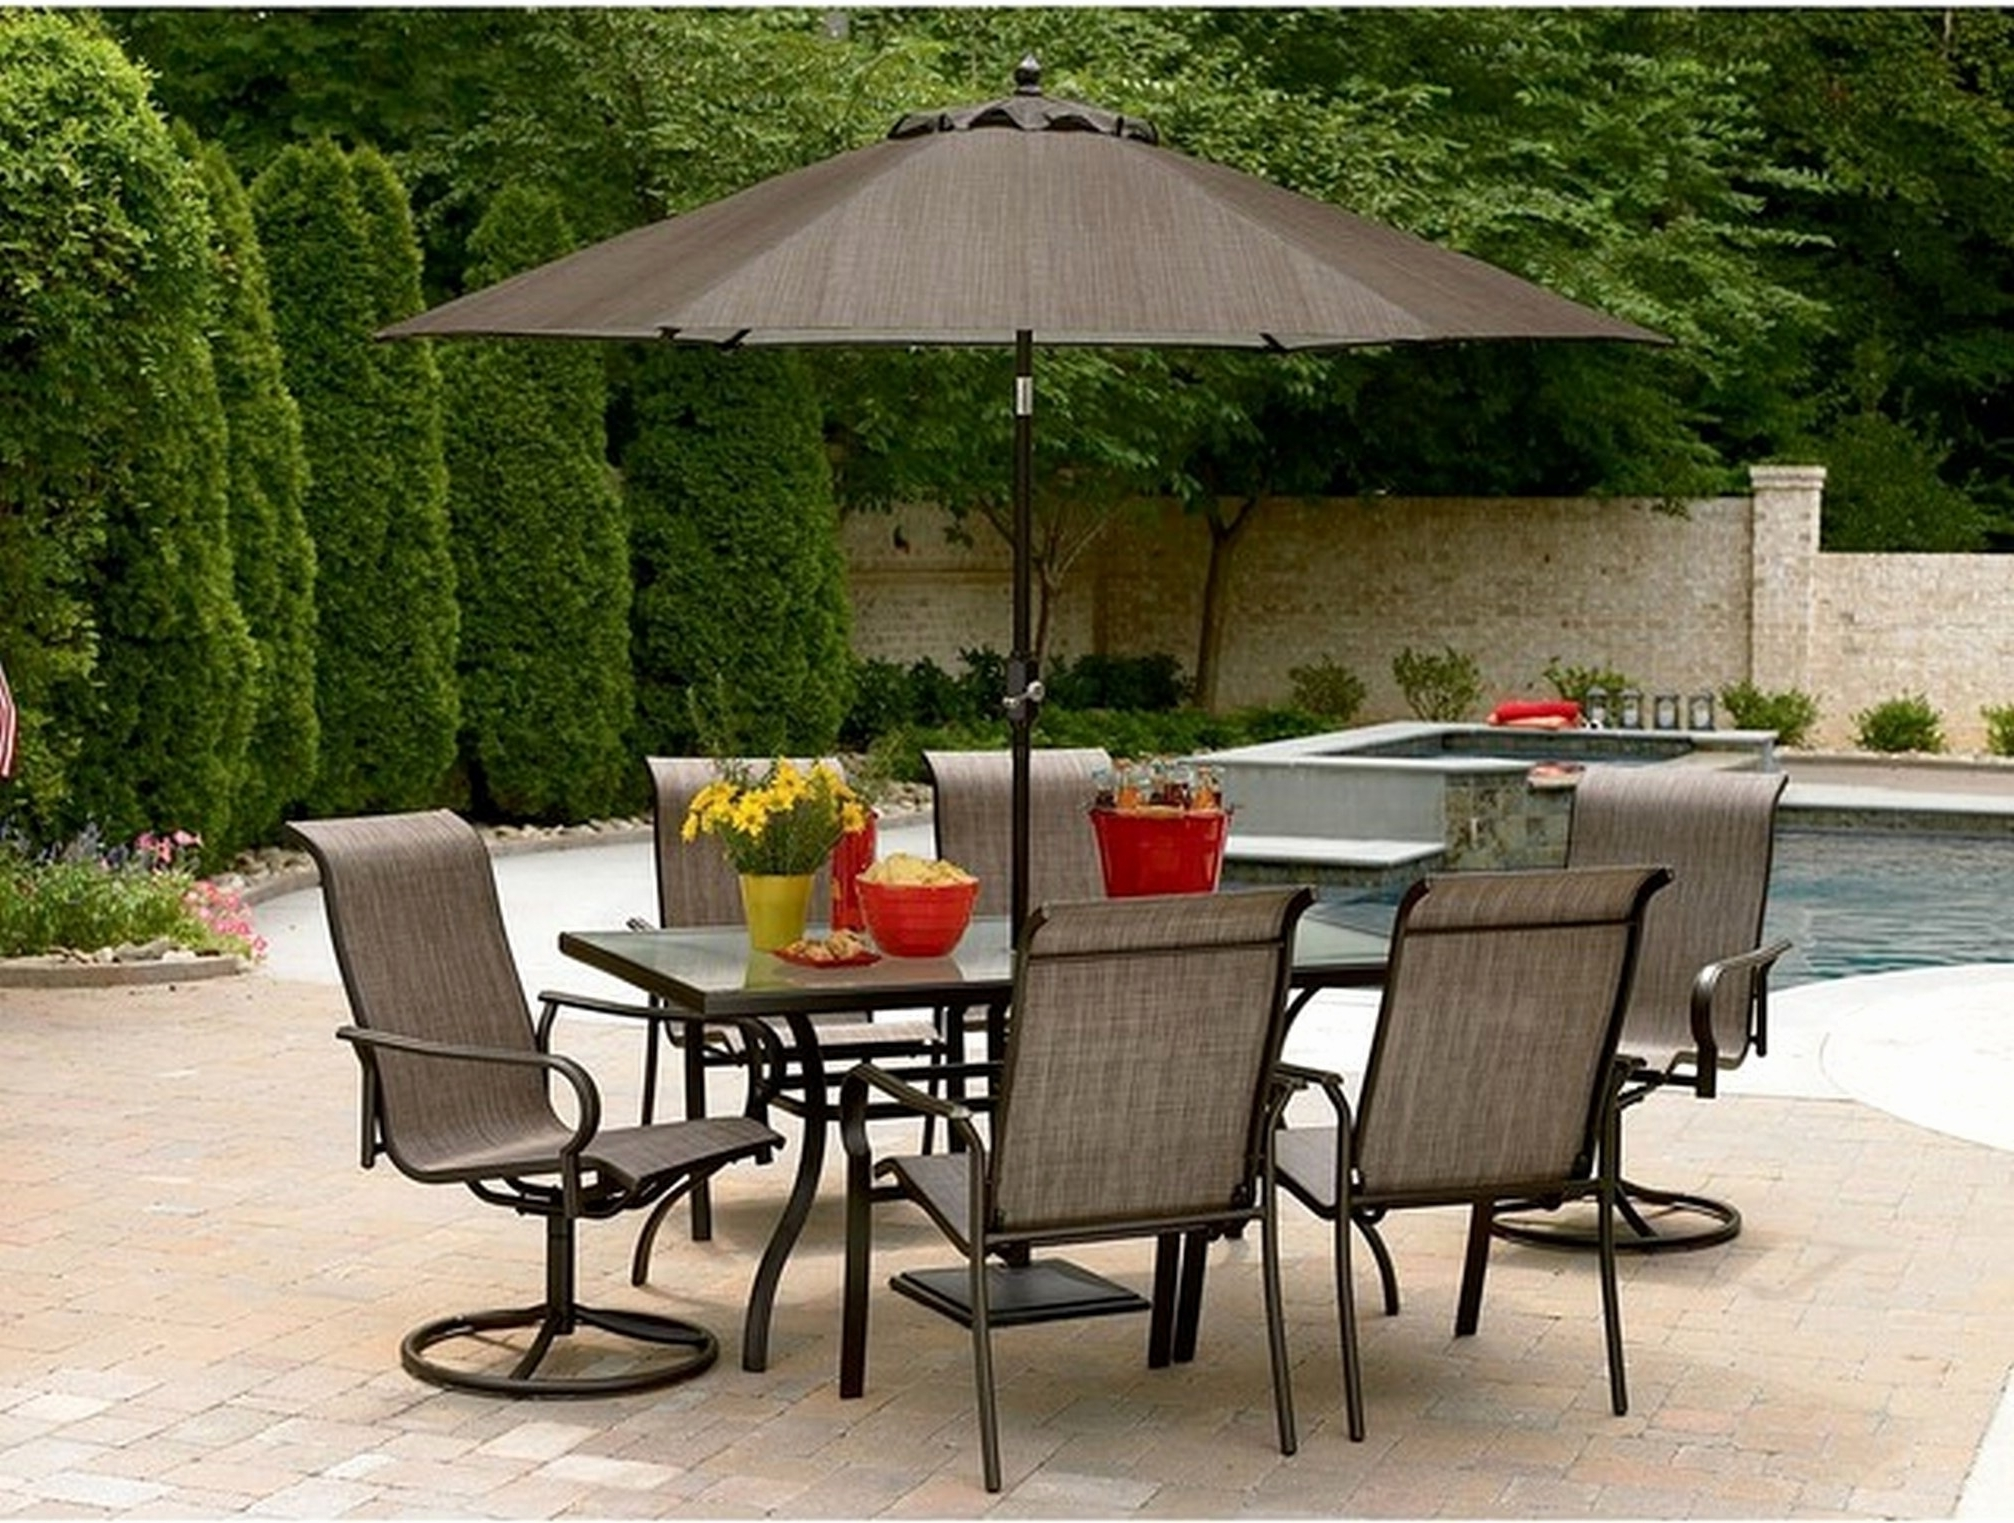 Well Liked Great Small Patio Tables With Umbrellas – Designsolutions Usa In Small Patio Tables With Umbrellas (View 20 of 20)